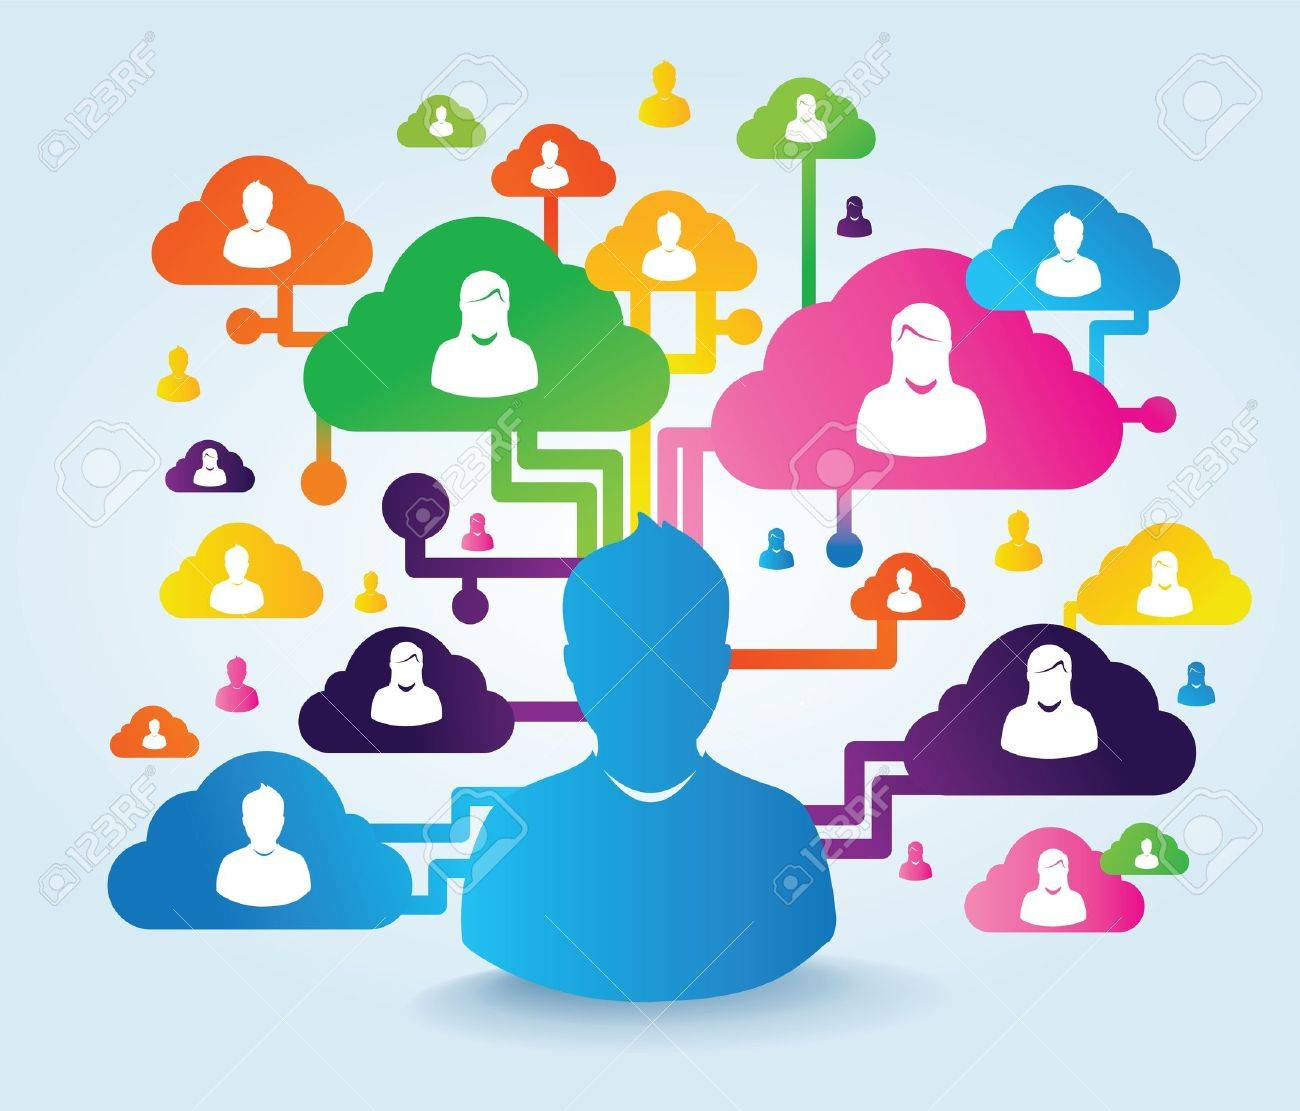 cloud and social media Stock Photo - 21250788